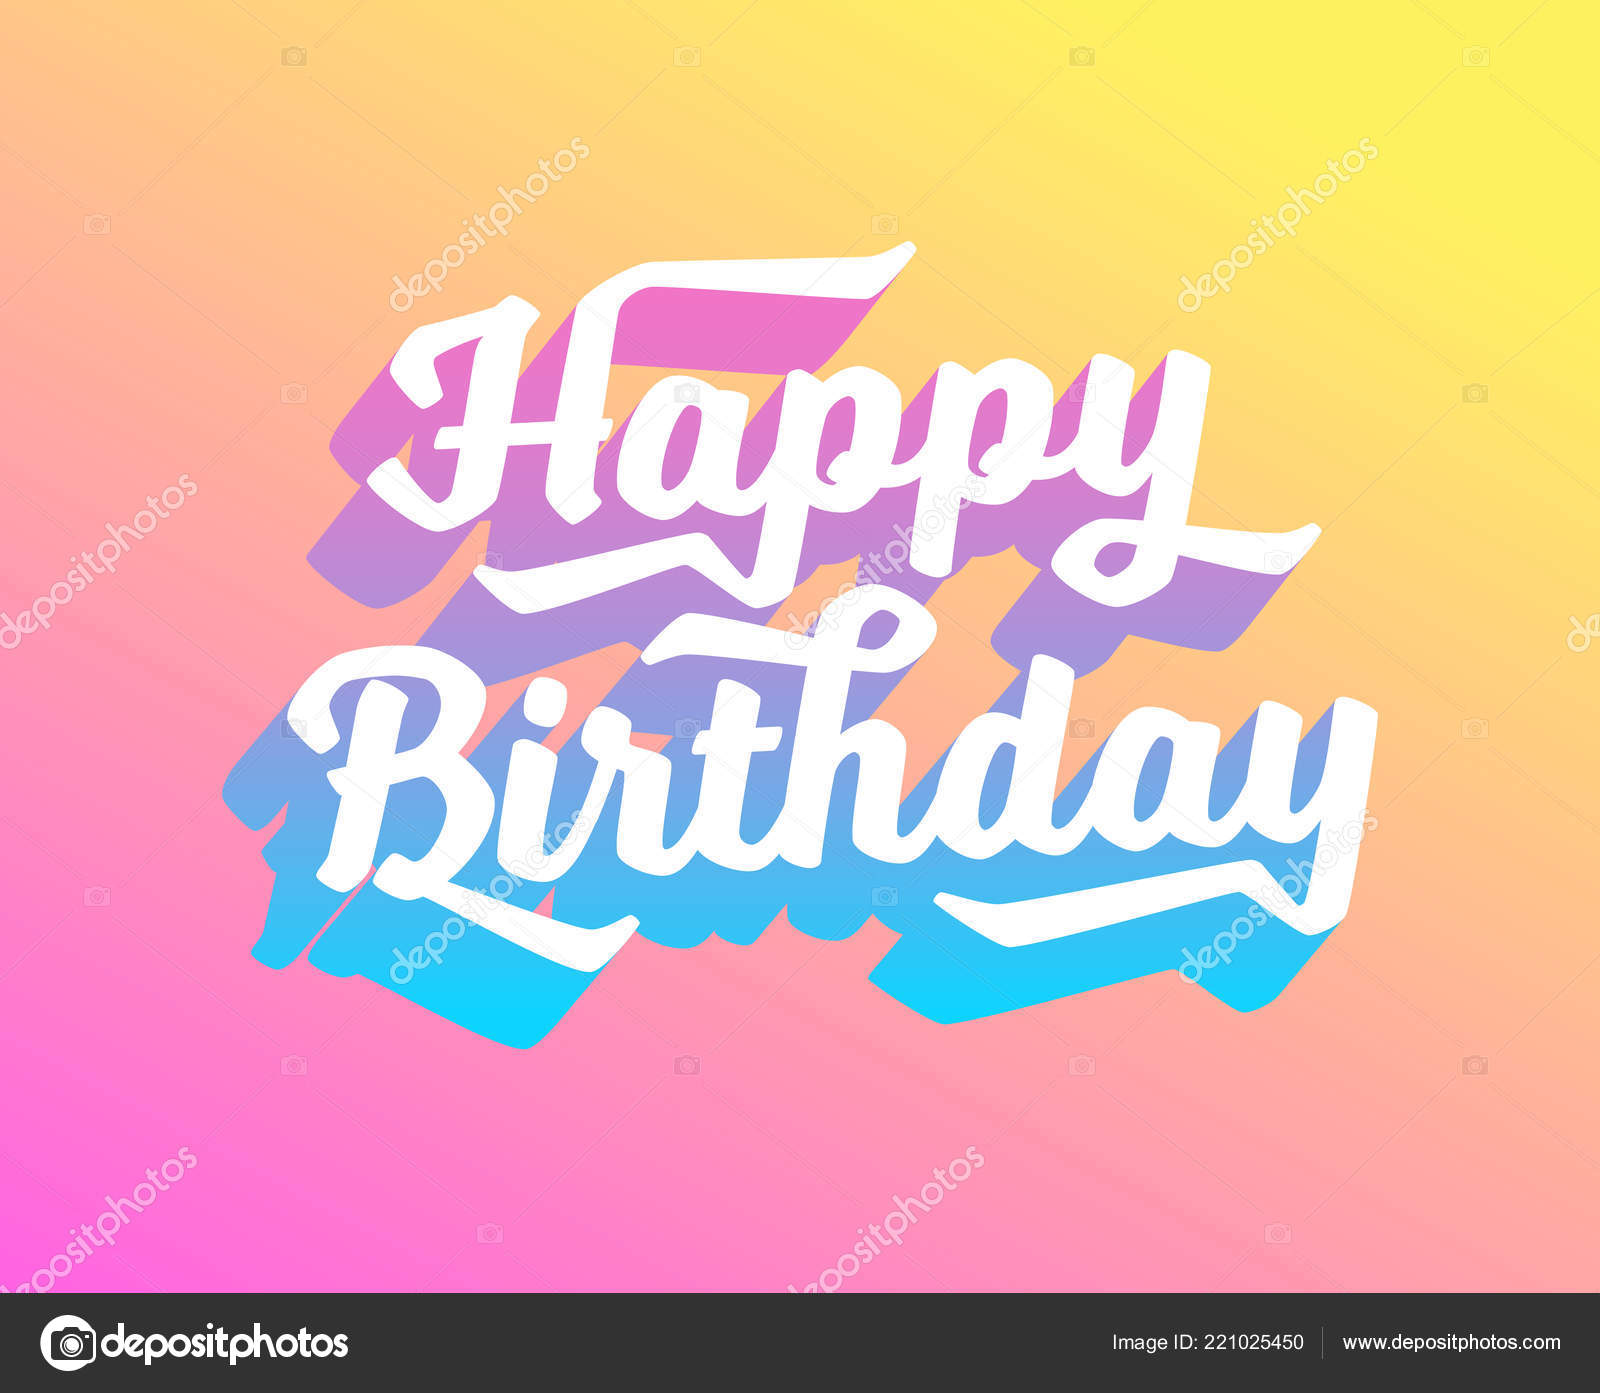 Happy Birthday Card With Gradients And Bright Colours Vector EPS 10 Template For Postcard Invitation Banner Website Flyer Newsletter Email